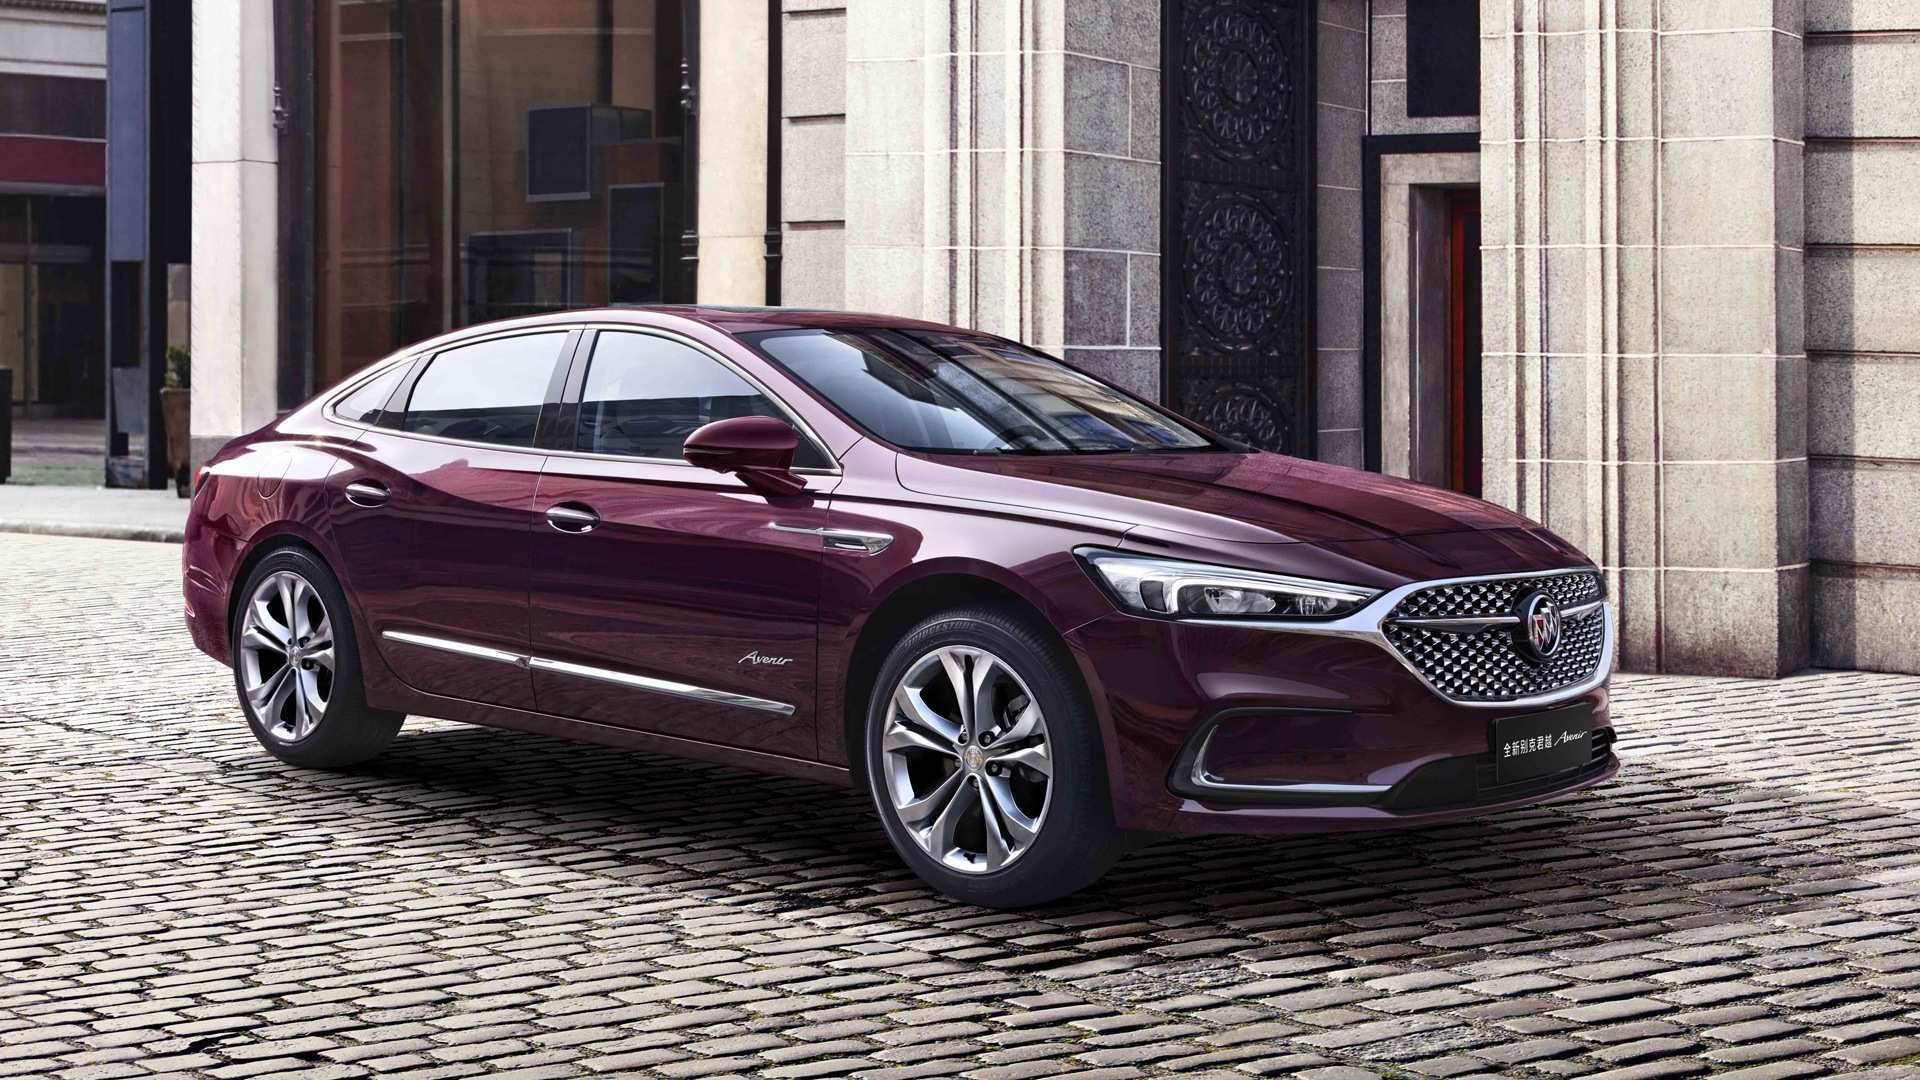 52 The Best Buick Lacrosse 2020 Release